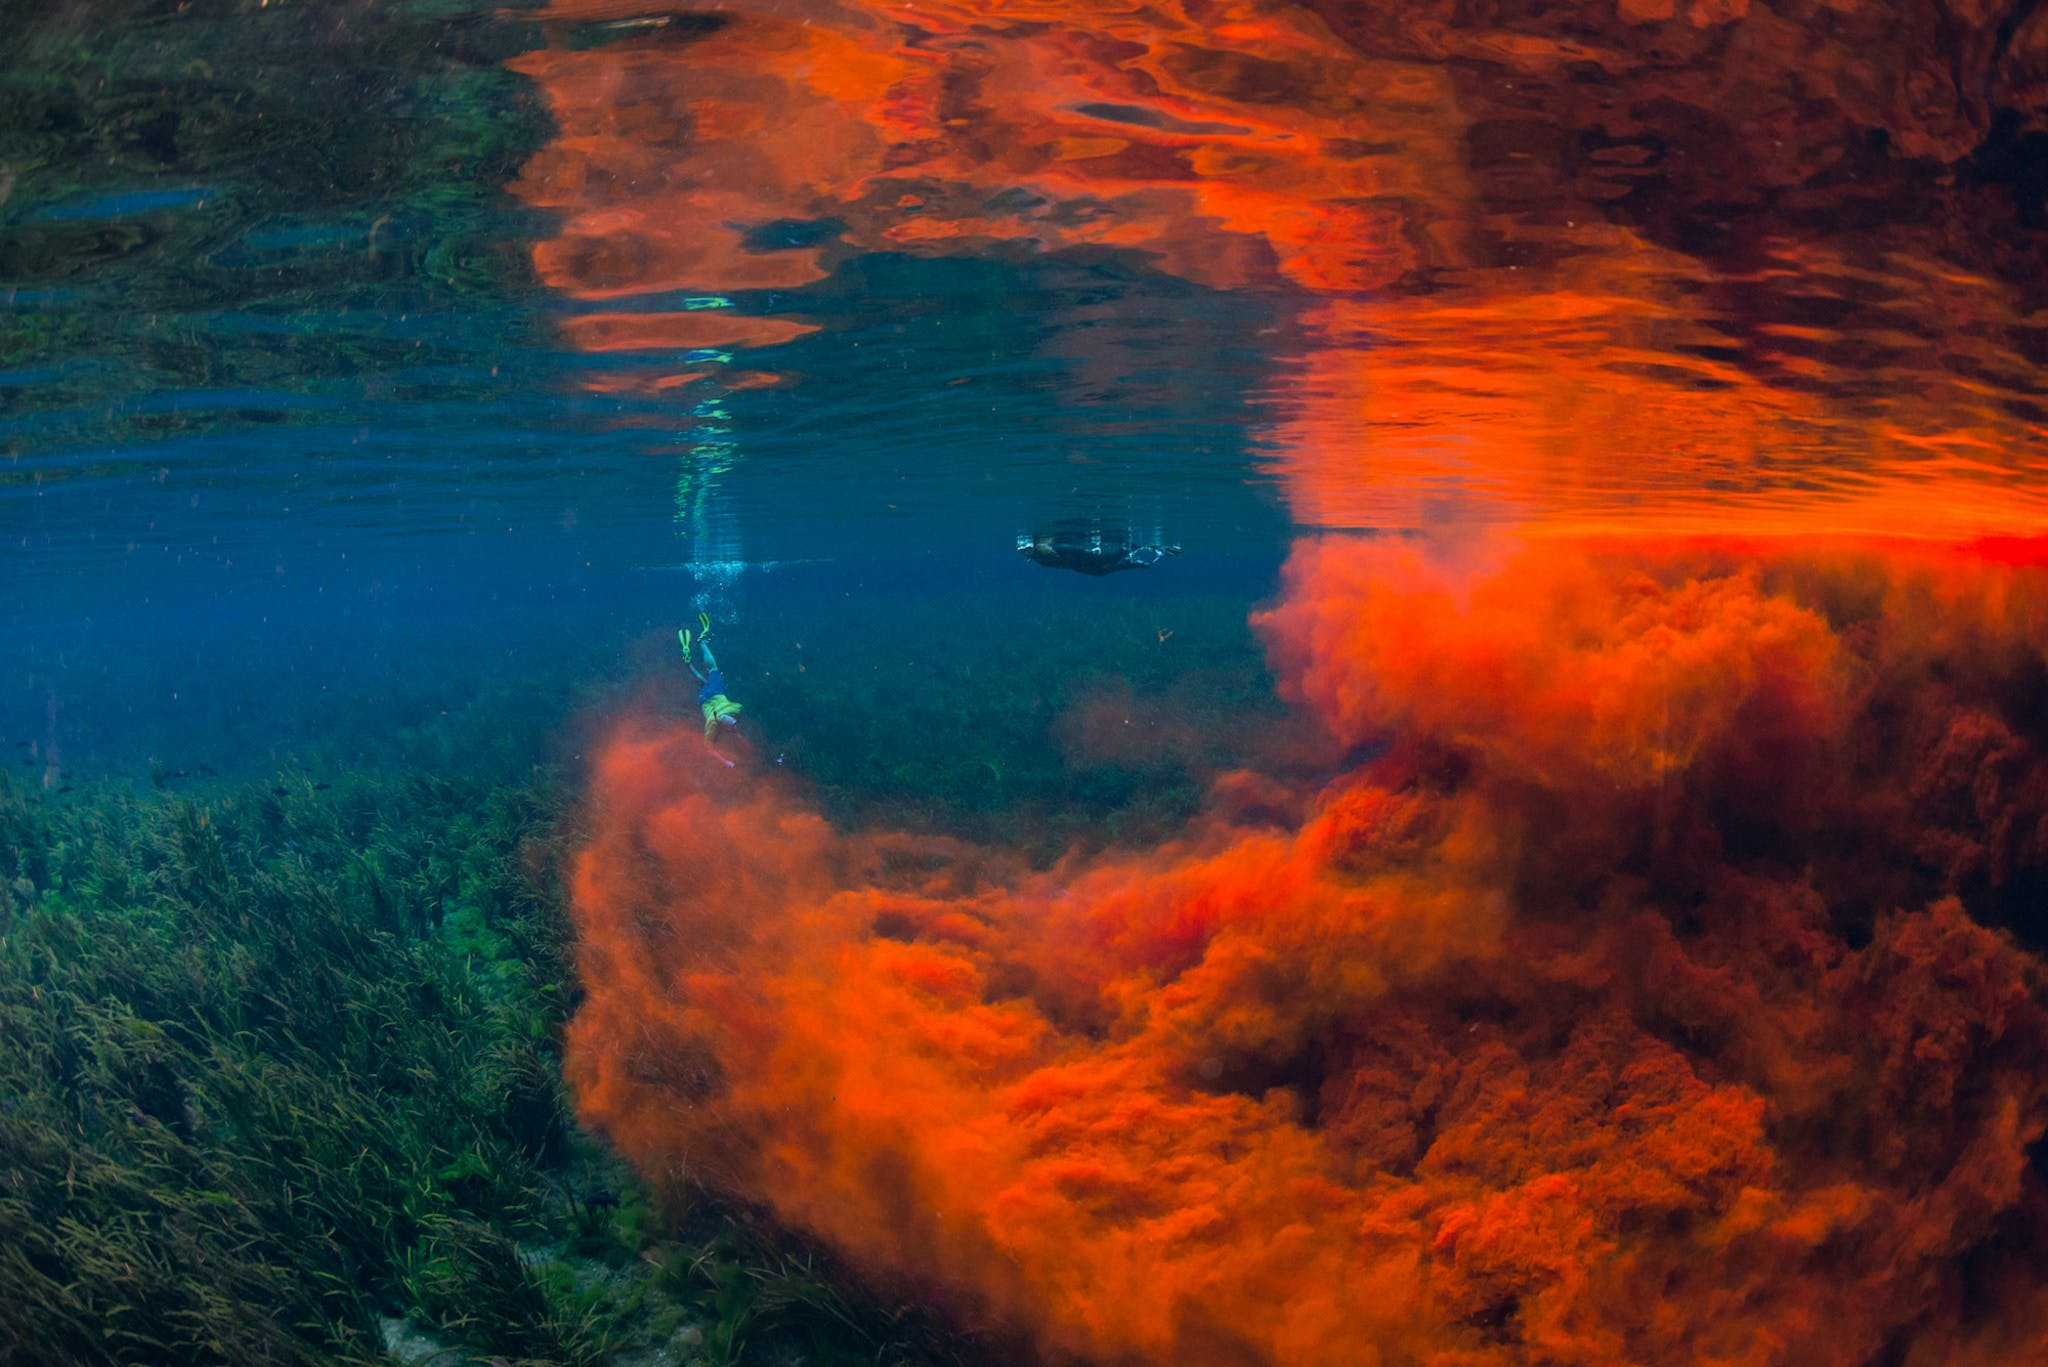 A diver next to a cloud of Rhodamine WT